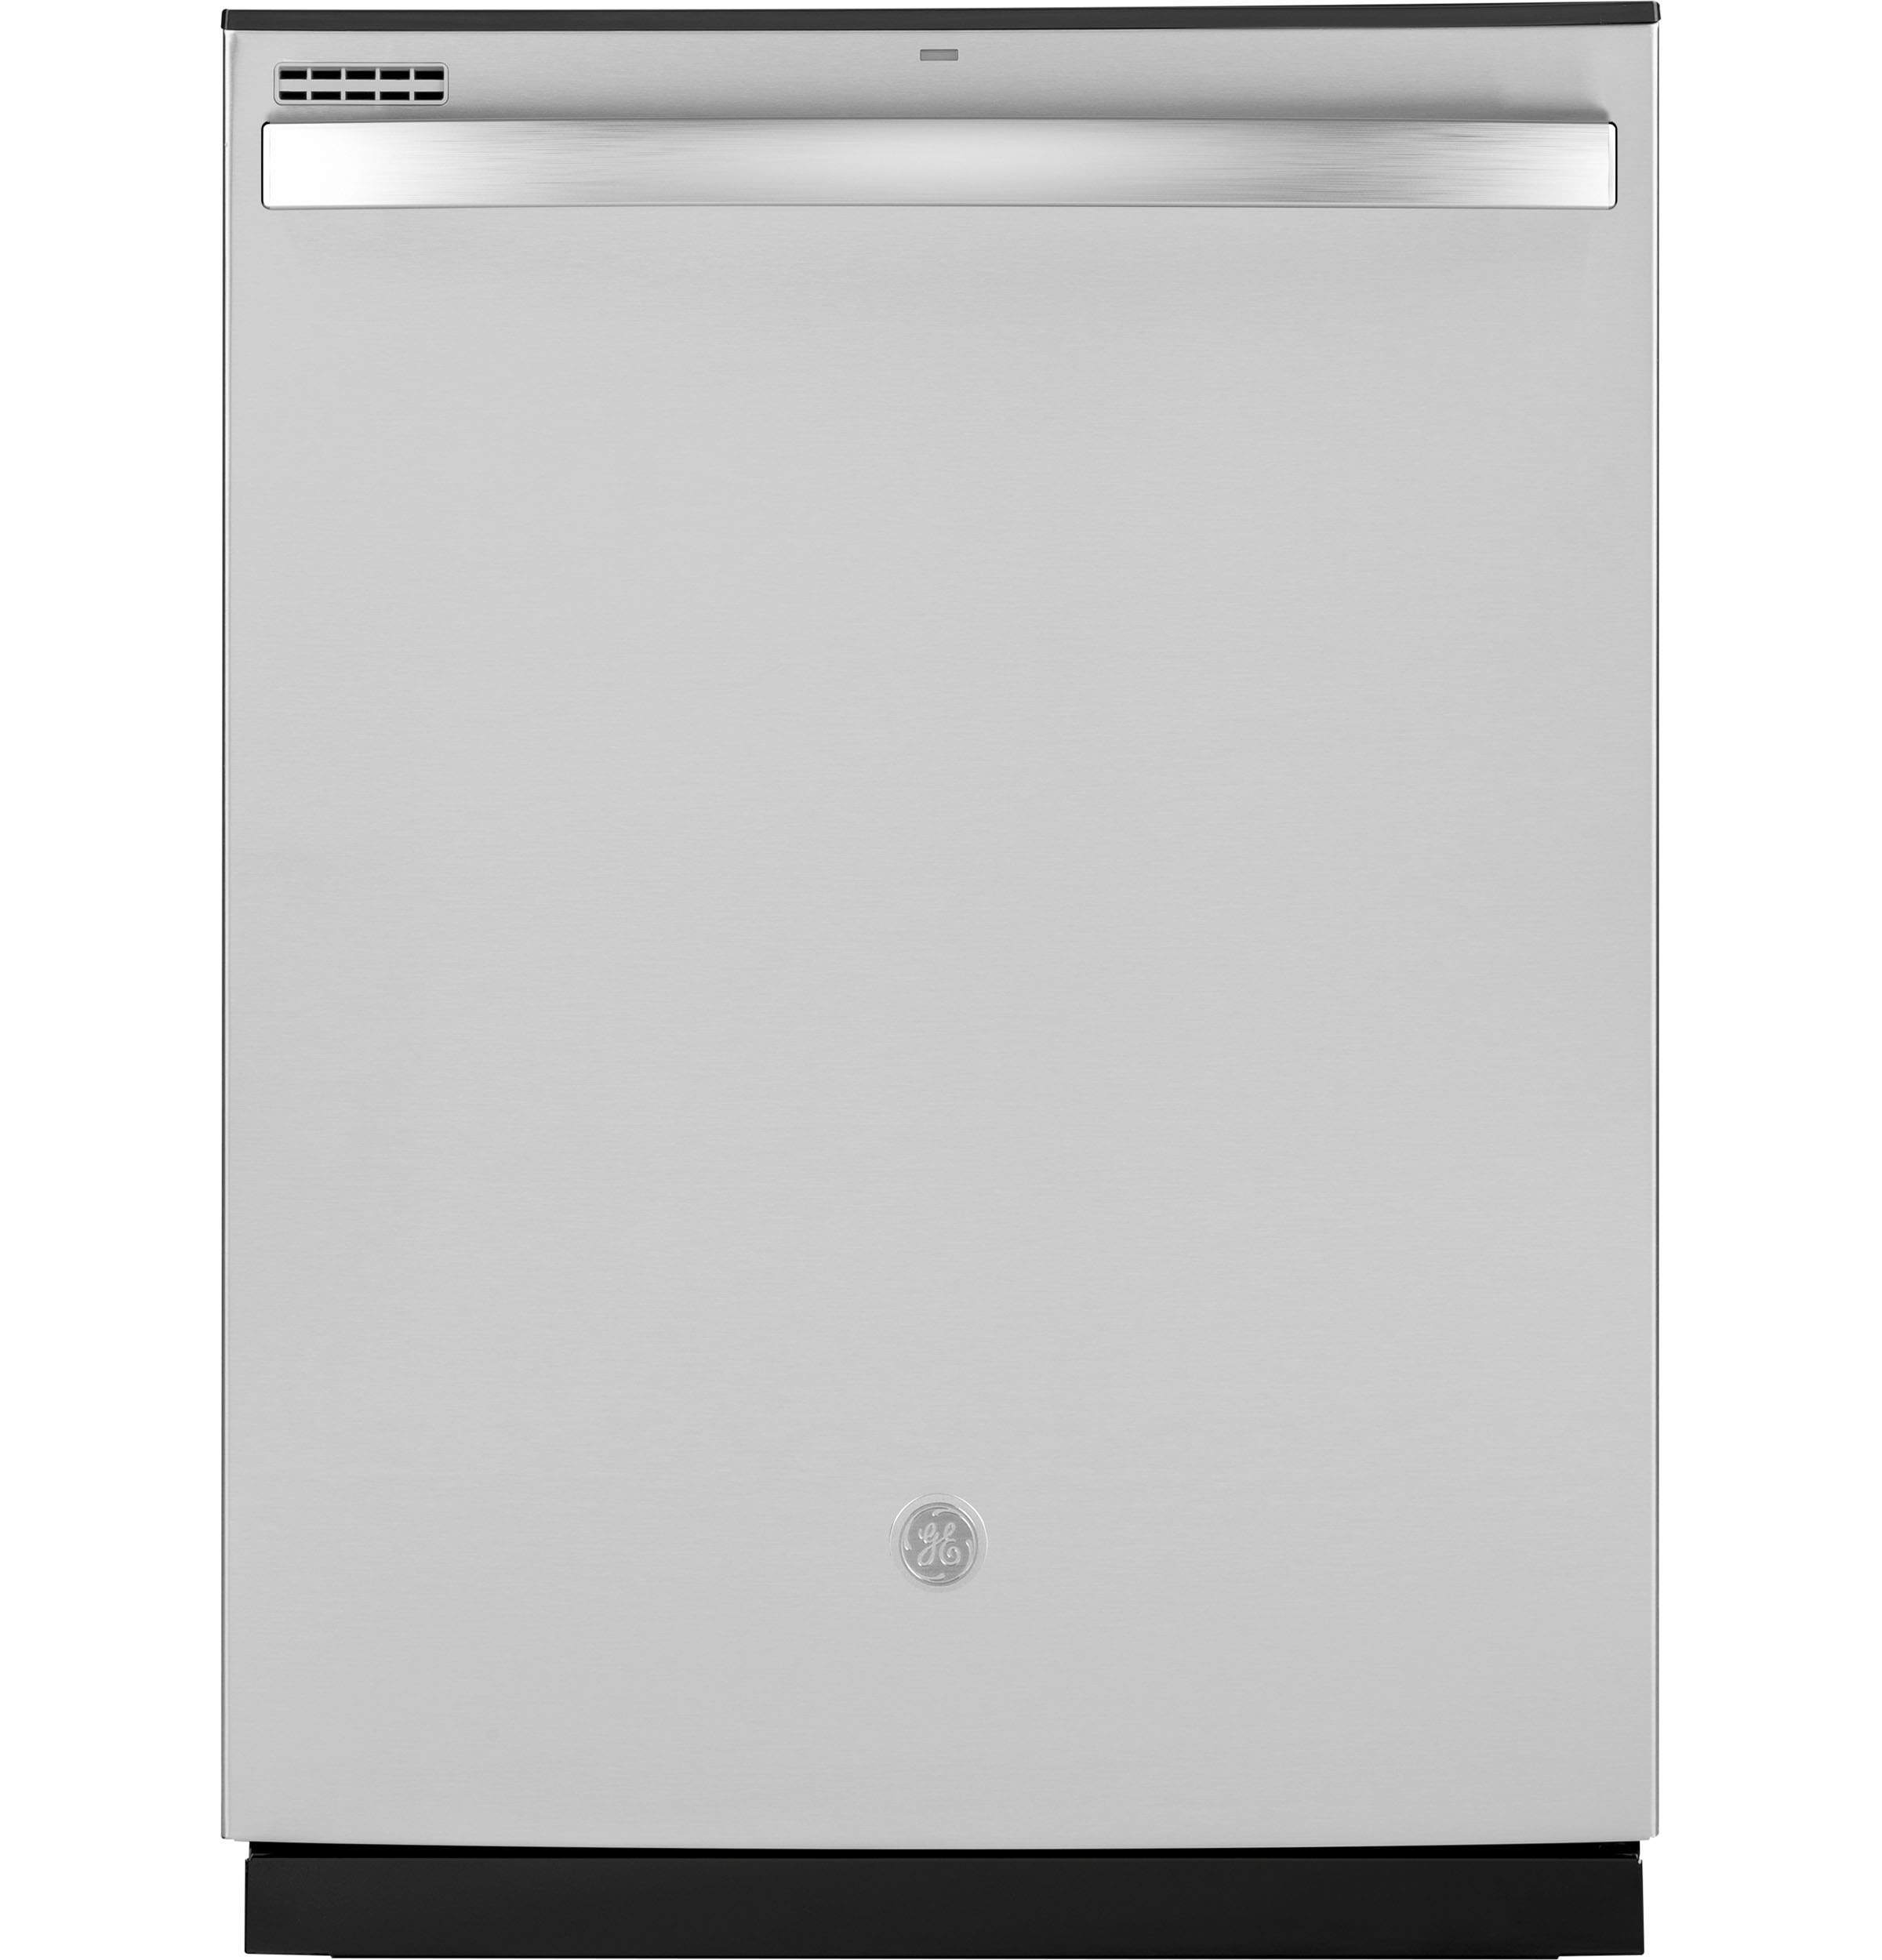 GE GE® Fingerprint Resistant Top Control with Plastic Interior Dishwasher with Sanitize Cycle & Dry Boost